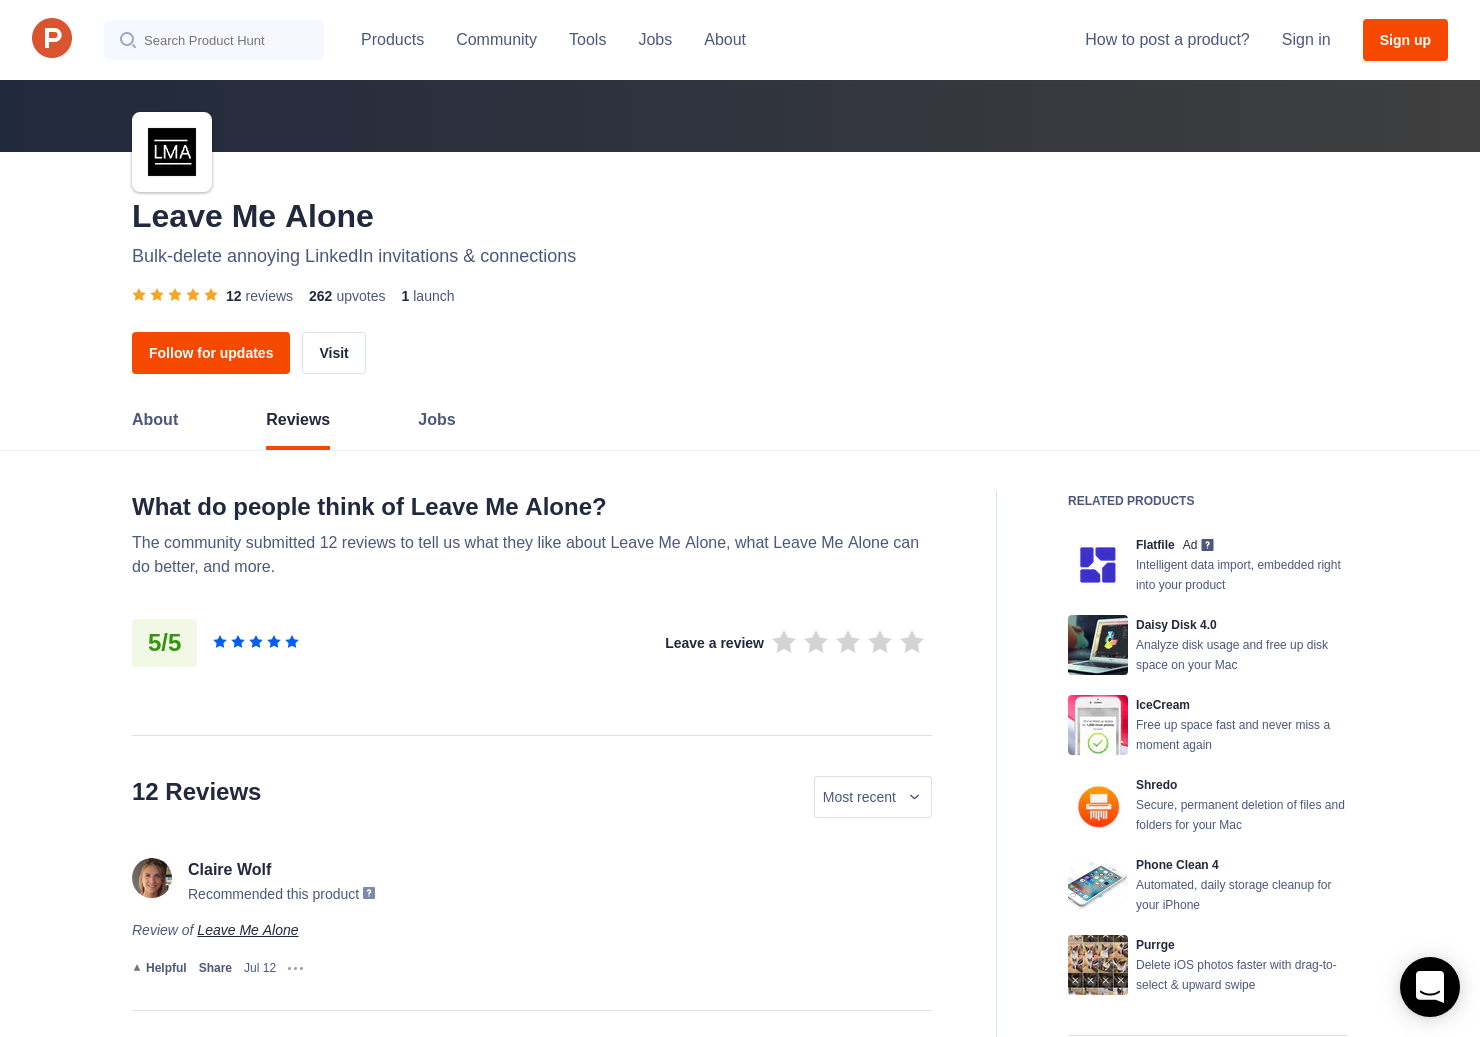 Cédric Costa's review of Leave Me Alone | Product Hunt